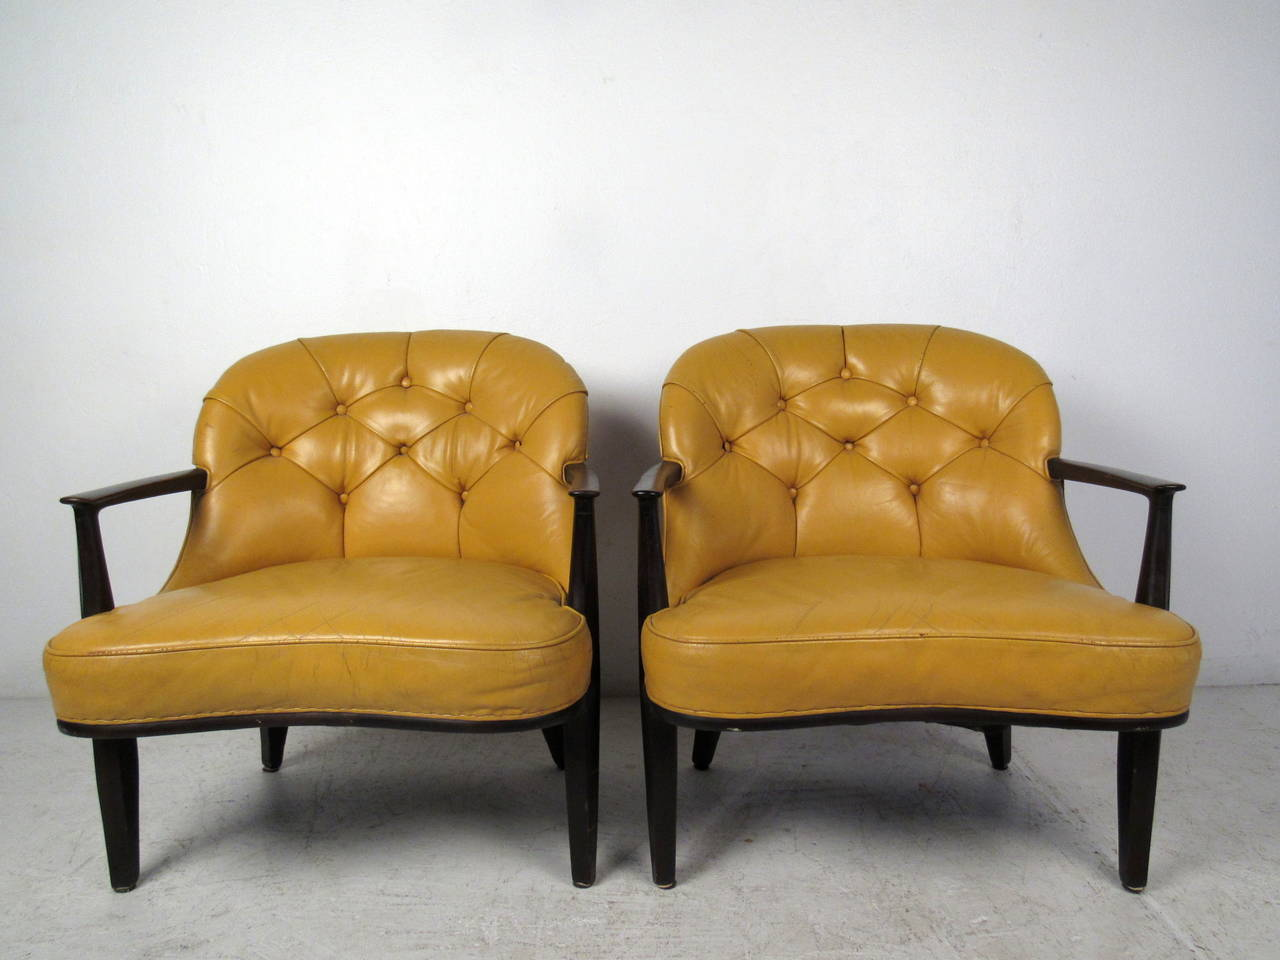 tufted yellow chair dining chairs for sale pair of by dunbar at 1stdibs